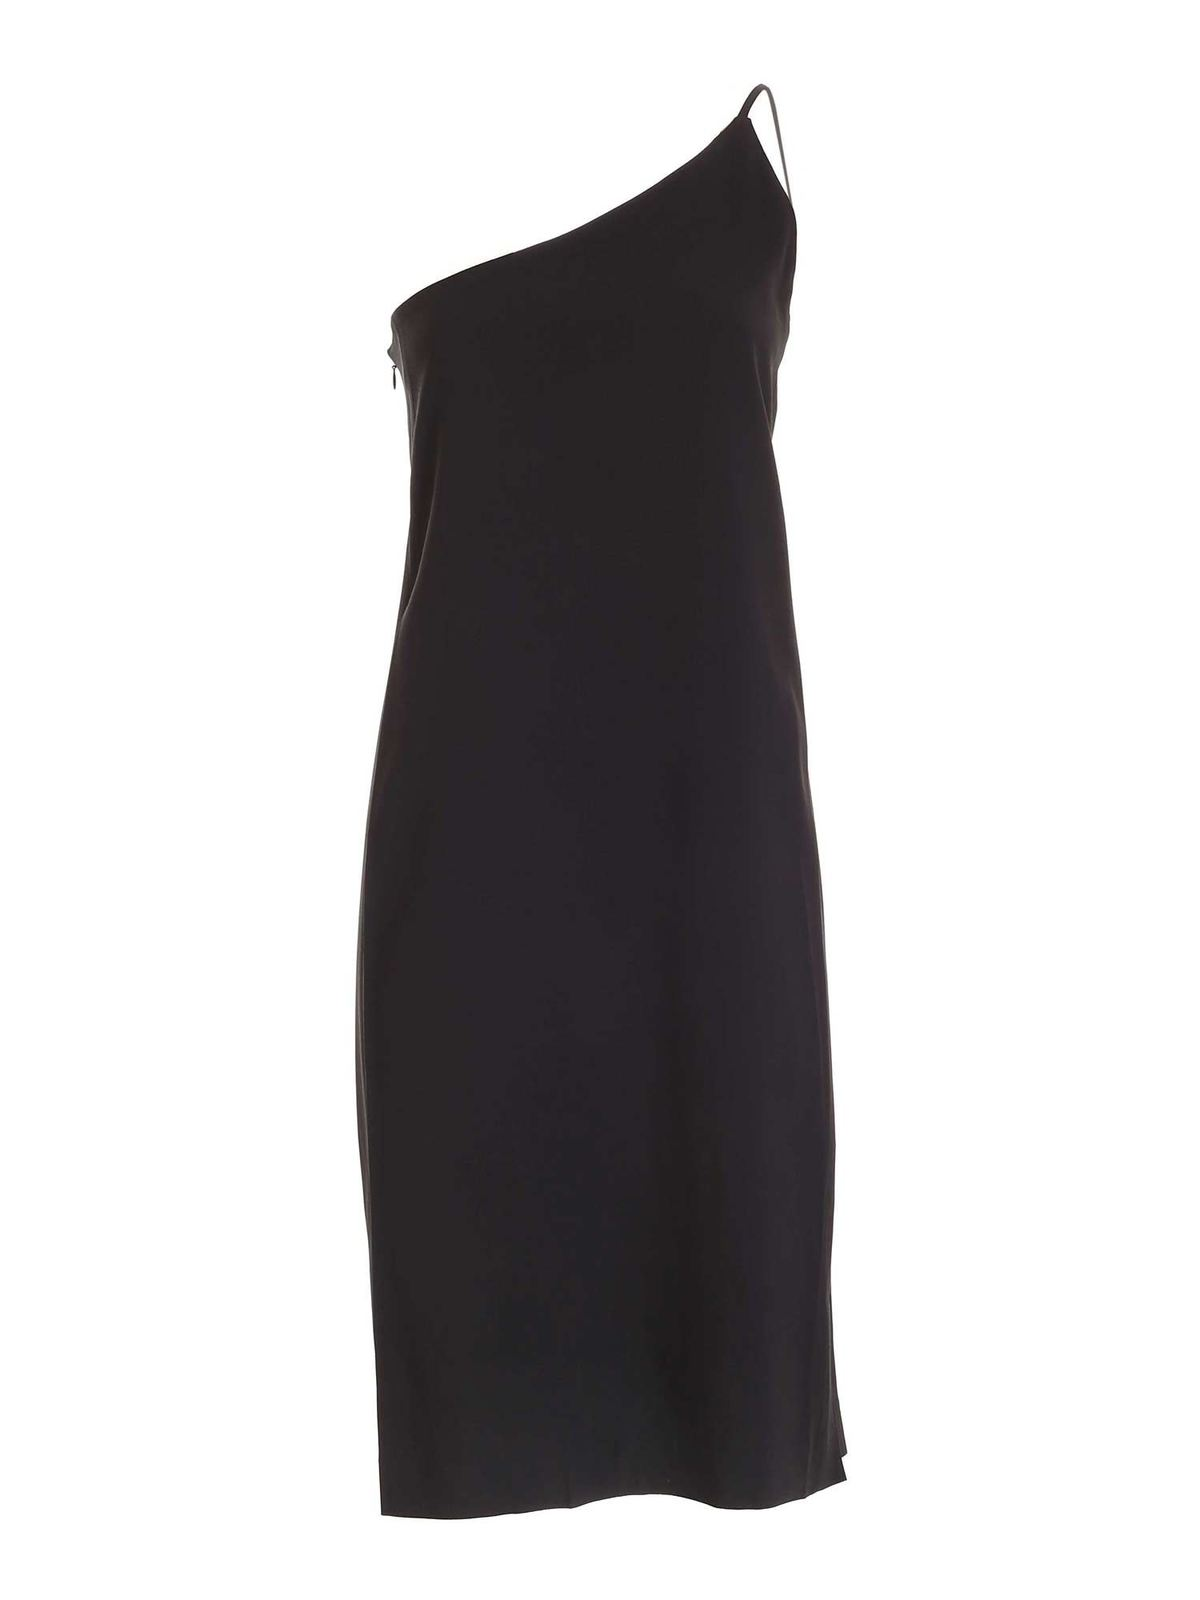 Acne Studios ONE-SHOULDER DRESS IN BLACK